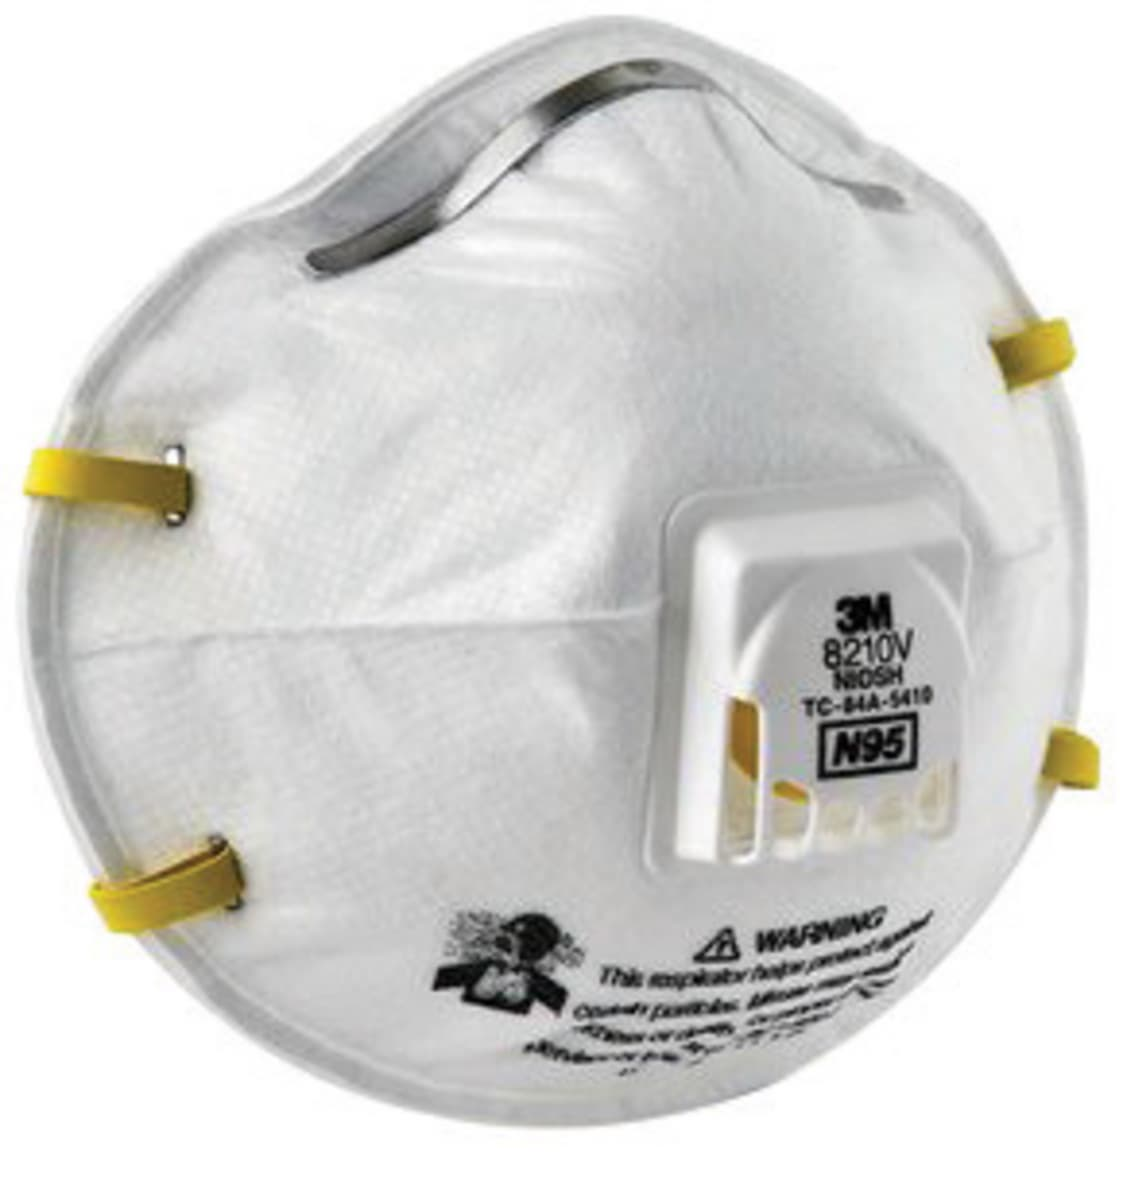 Disposable 3m™ Respirator Particulate Standard Wit 8210v N95